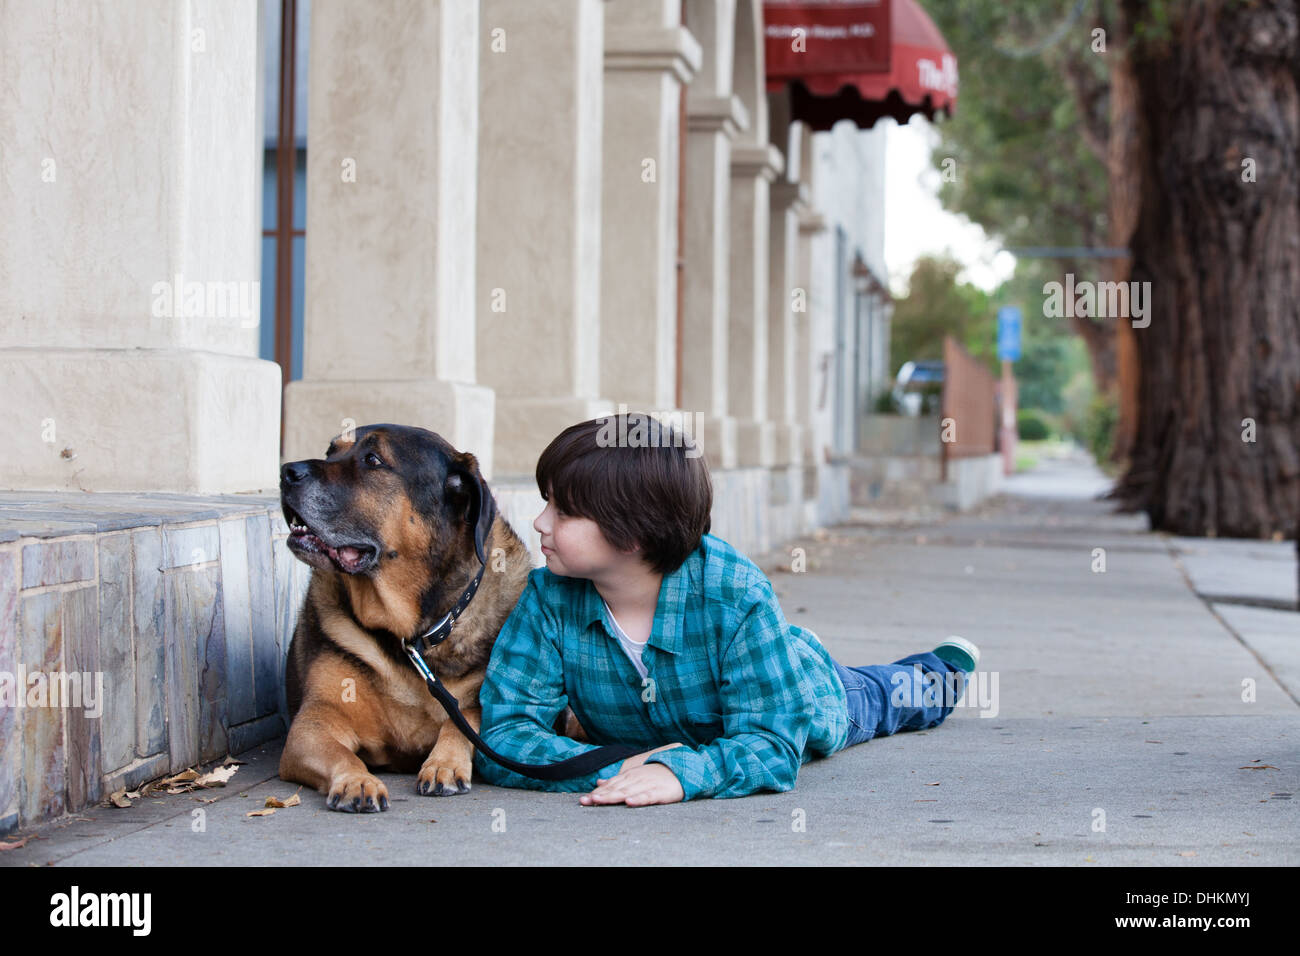 A 10 year old boy and his dog lying down on the sidewalk - Stock Image